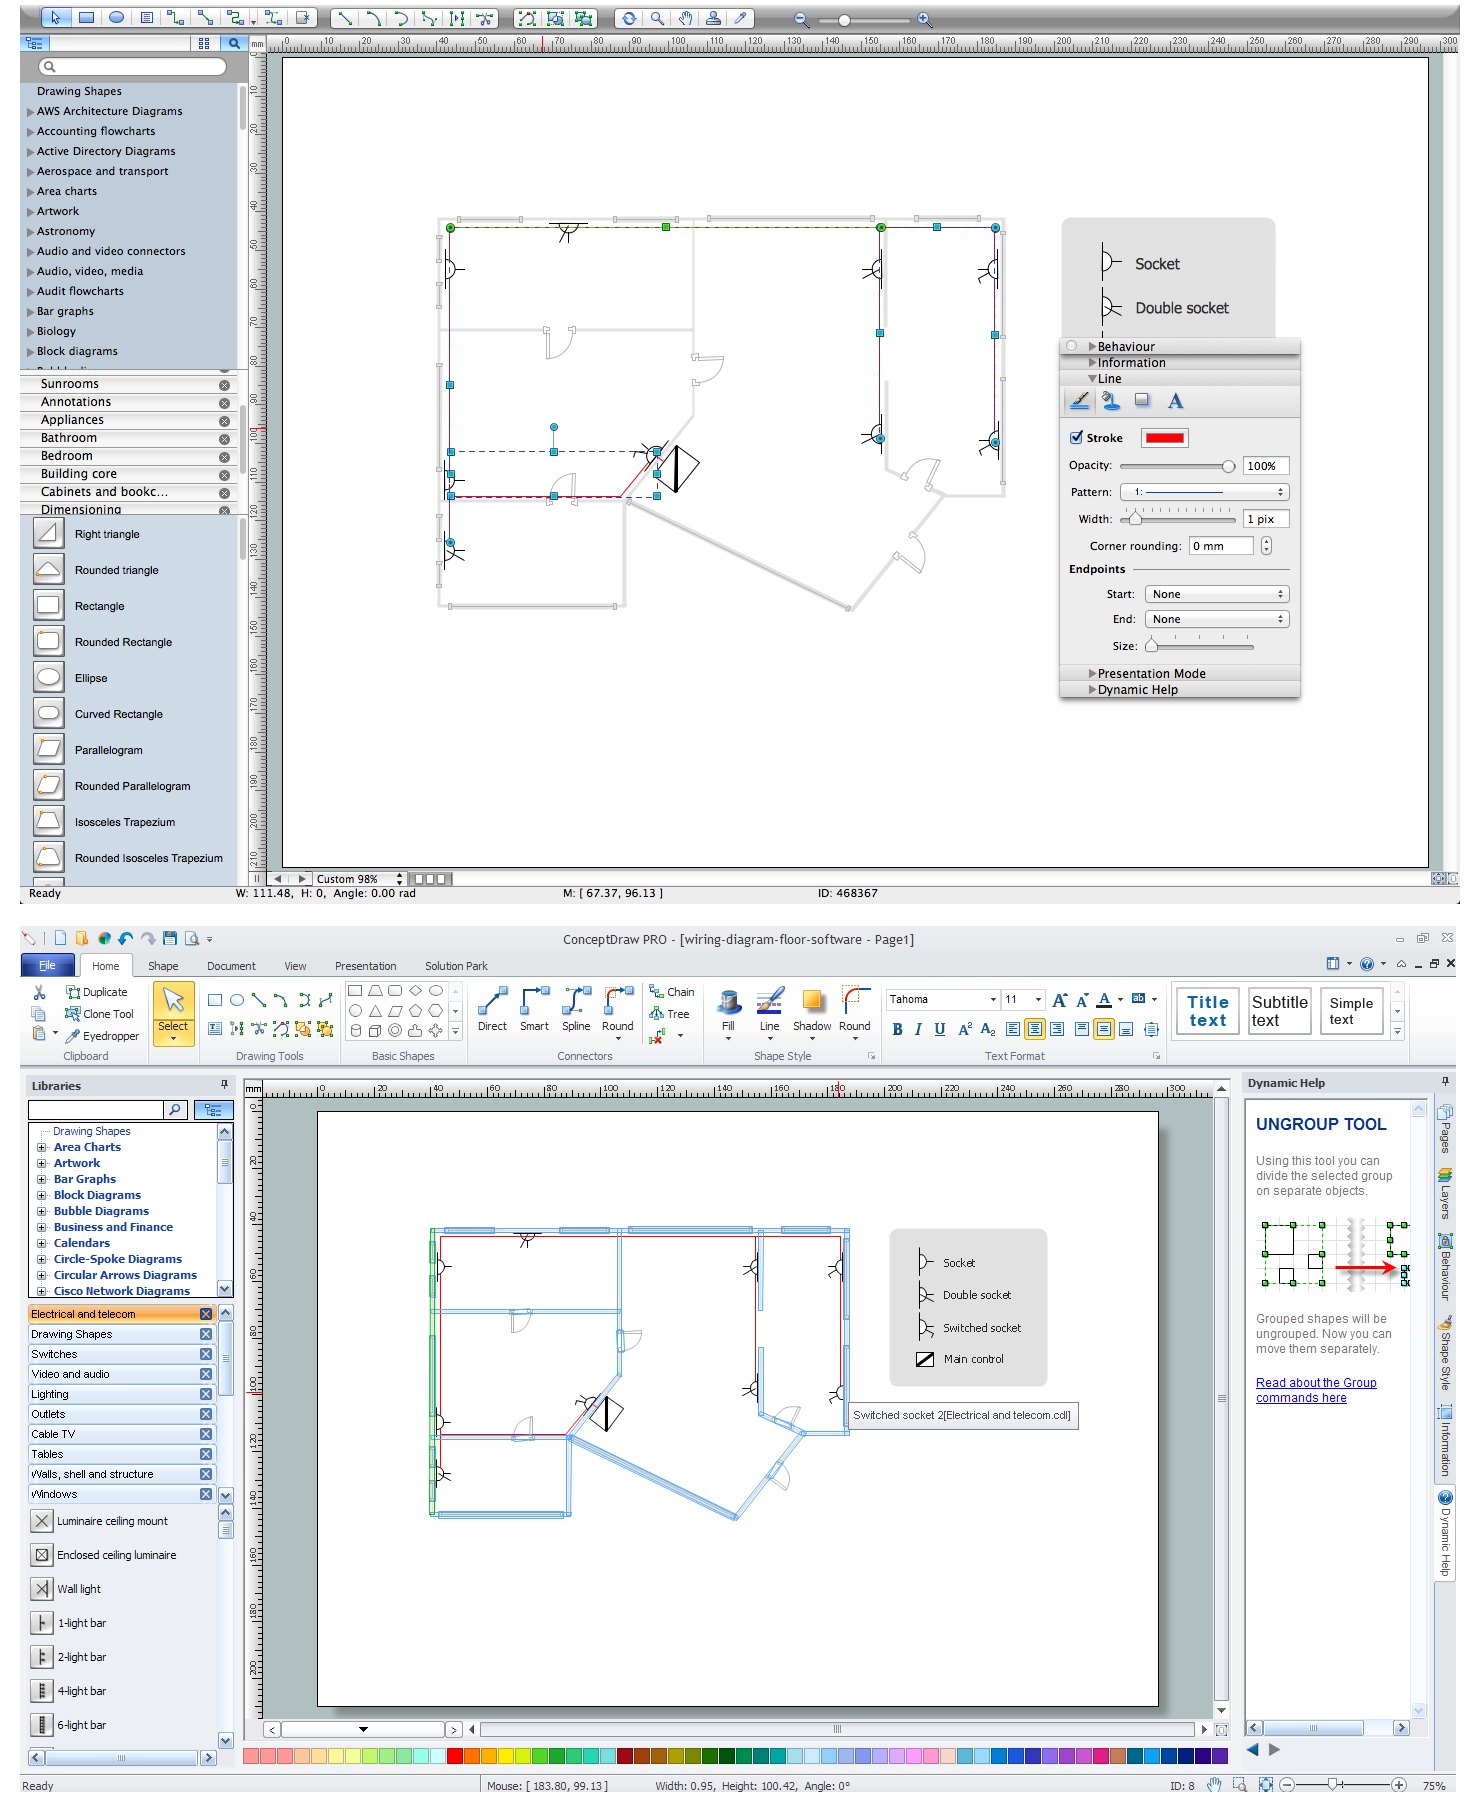 Circuit Diagrams The Following Diagram Represents Boolean Wiring With Conceptdraw Floor Software